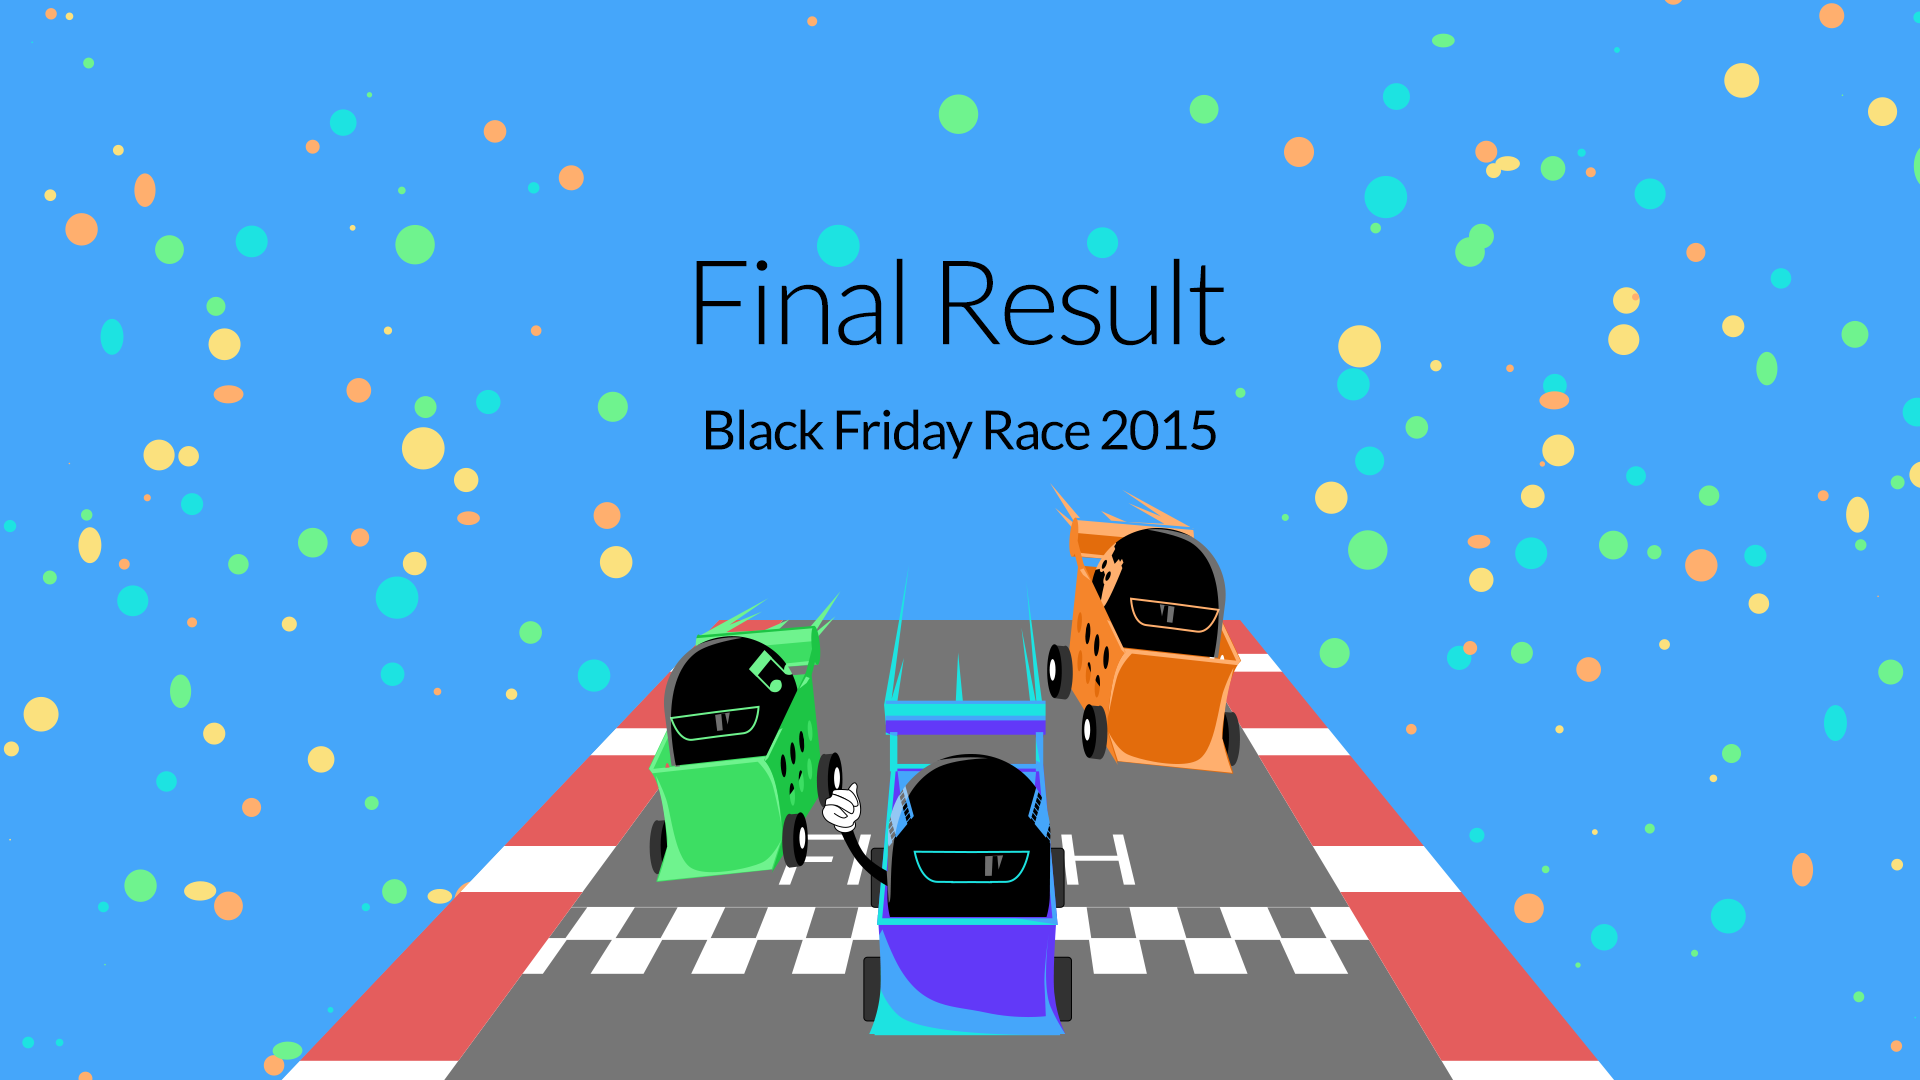 Black Friday 2015: Top Product Category